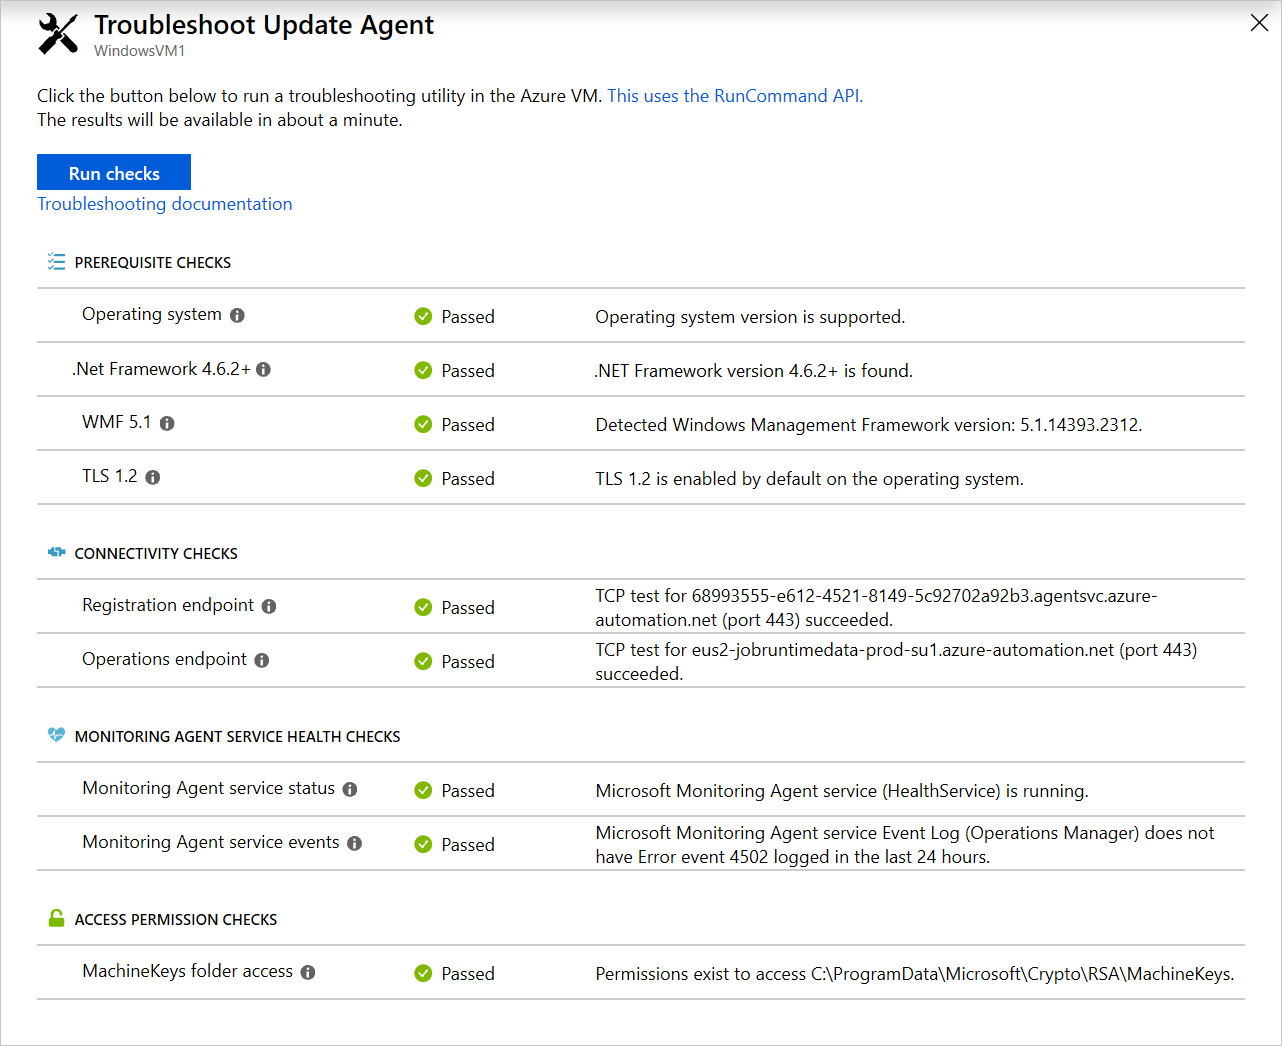 Understand the Windows agent check results in Azure Update